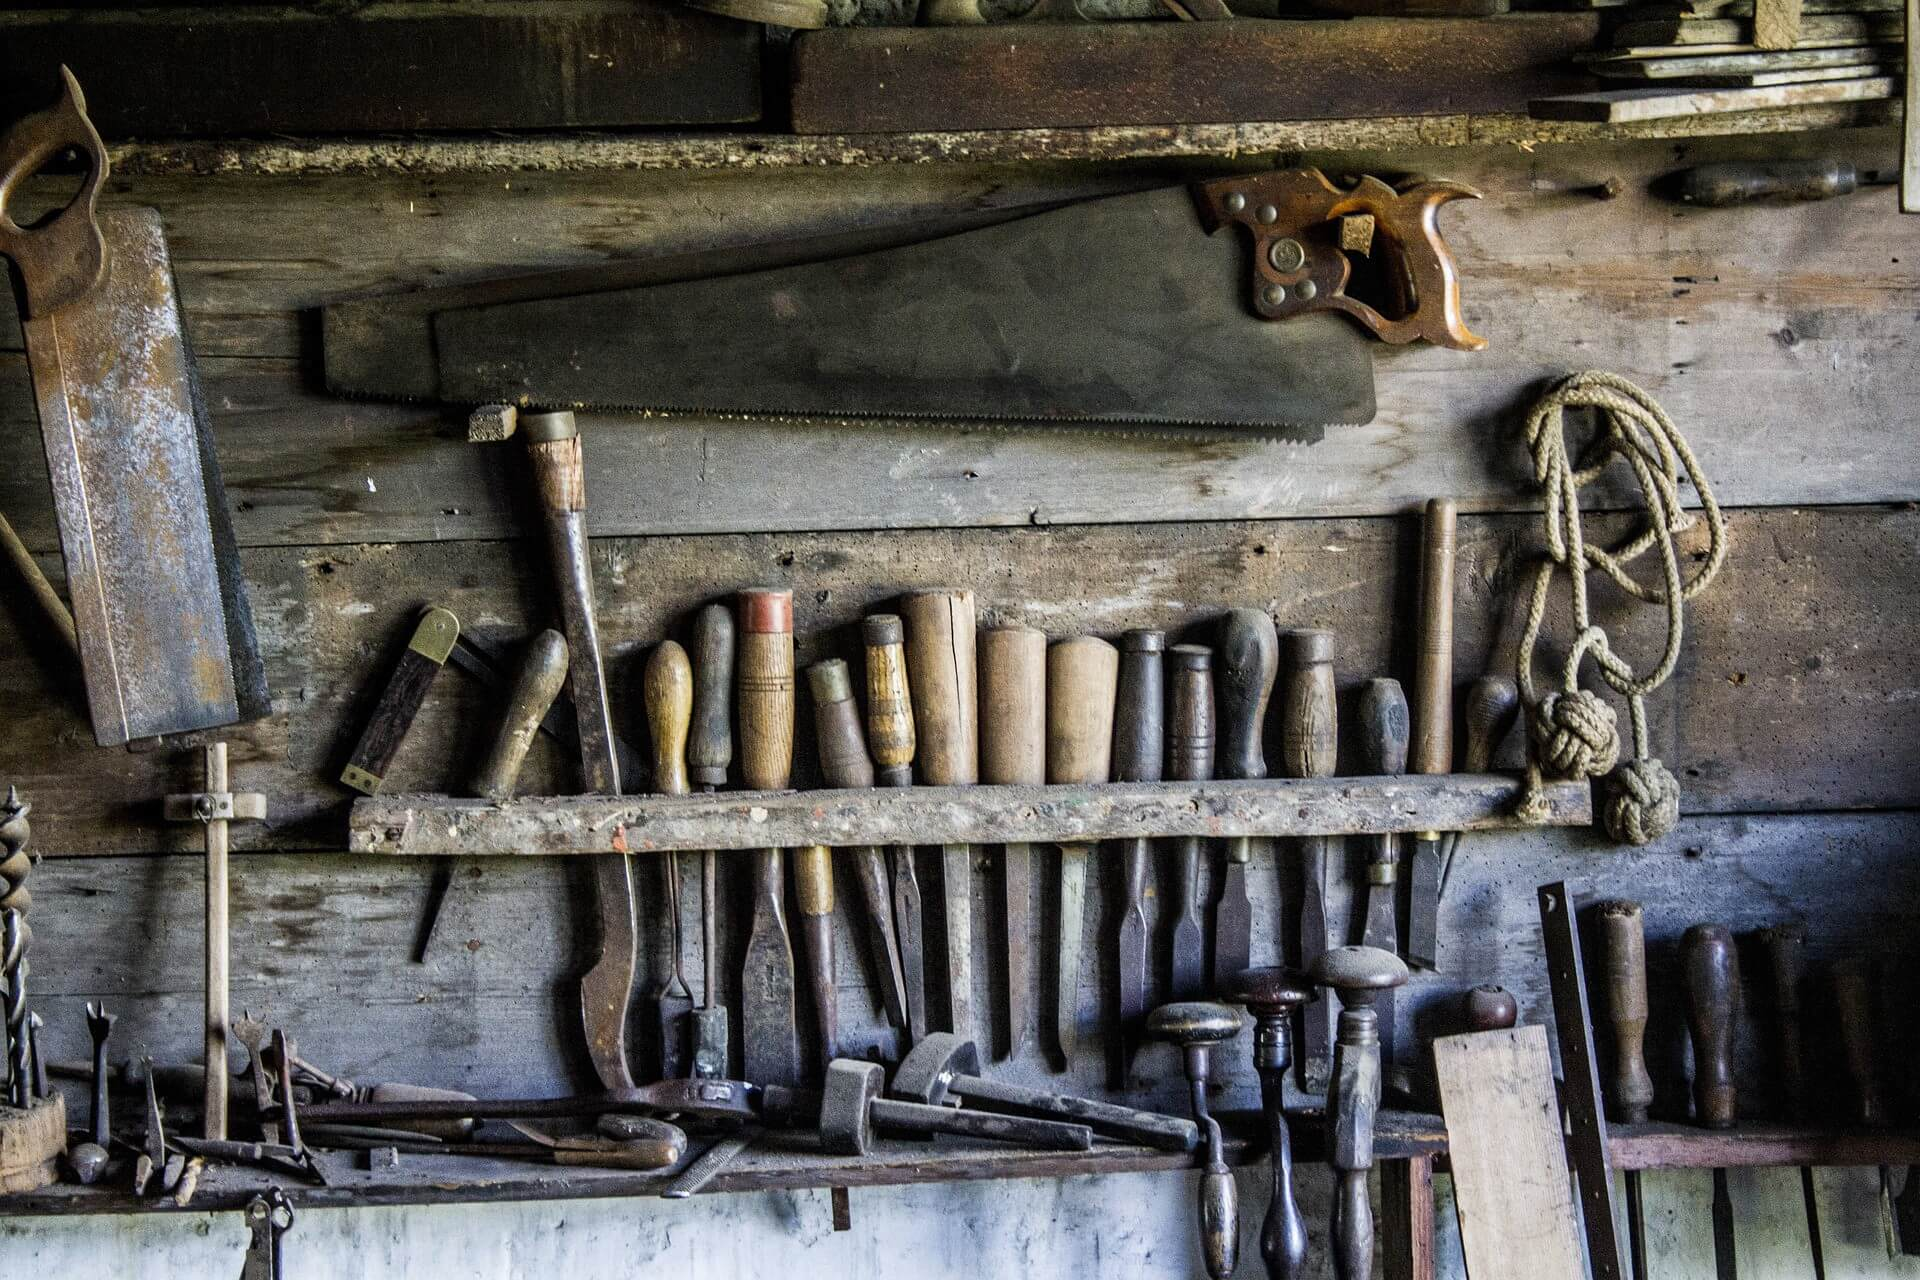 The Skills Gap for Application Tools